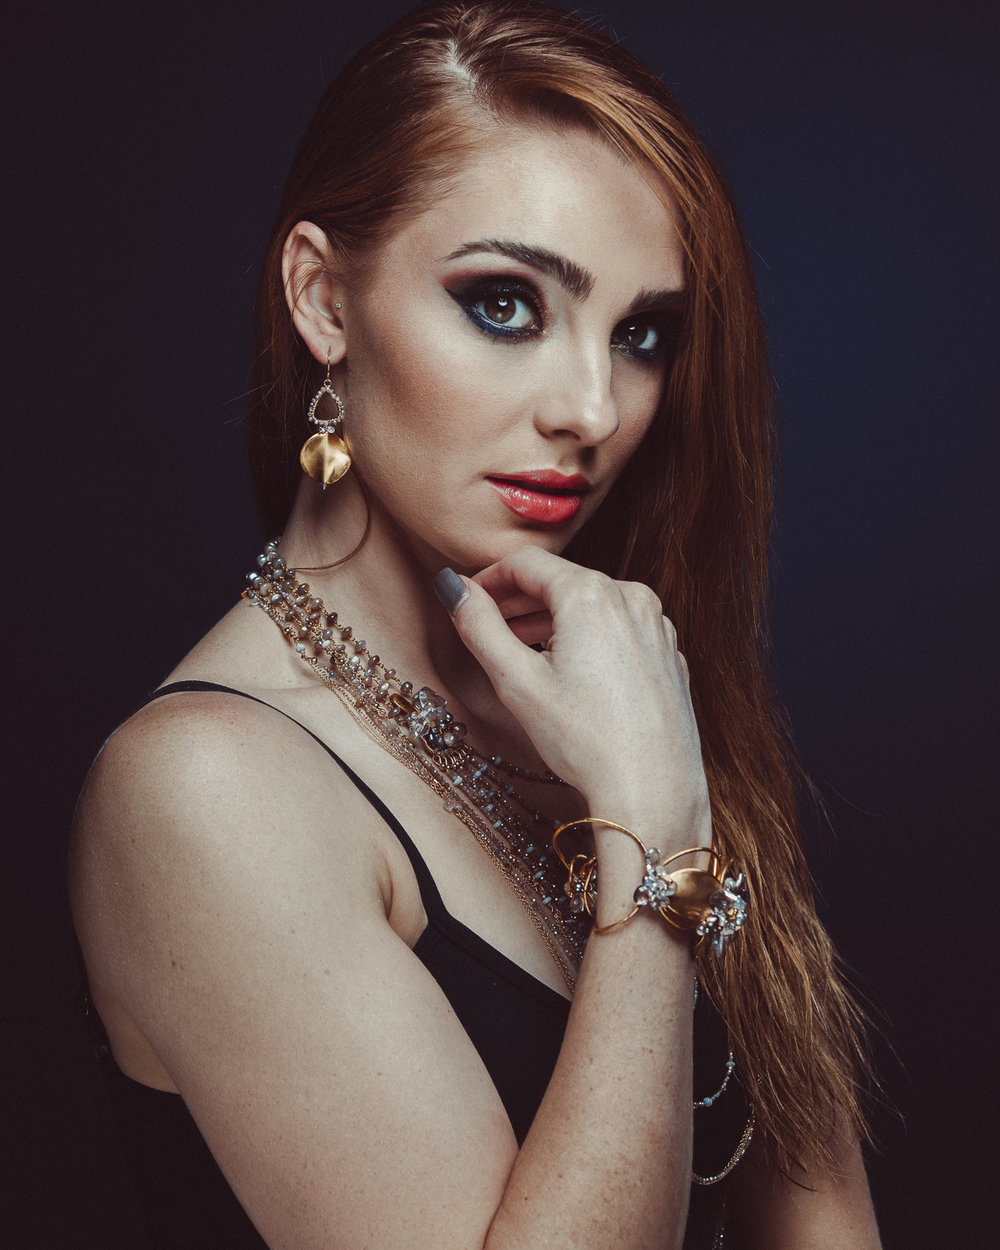 model wearing multi-strand necklace